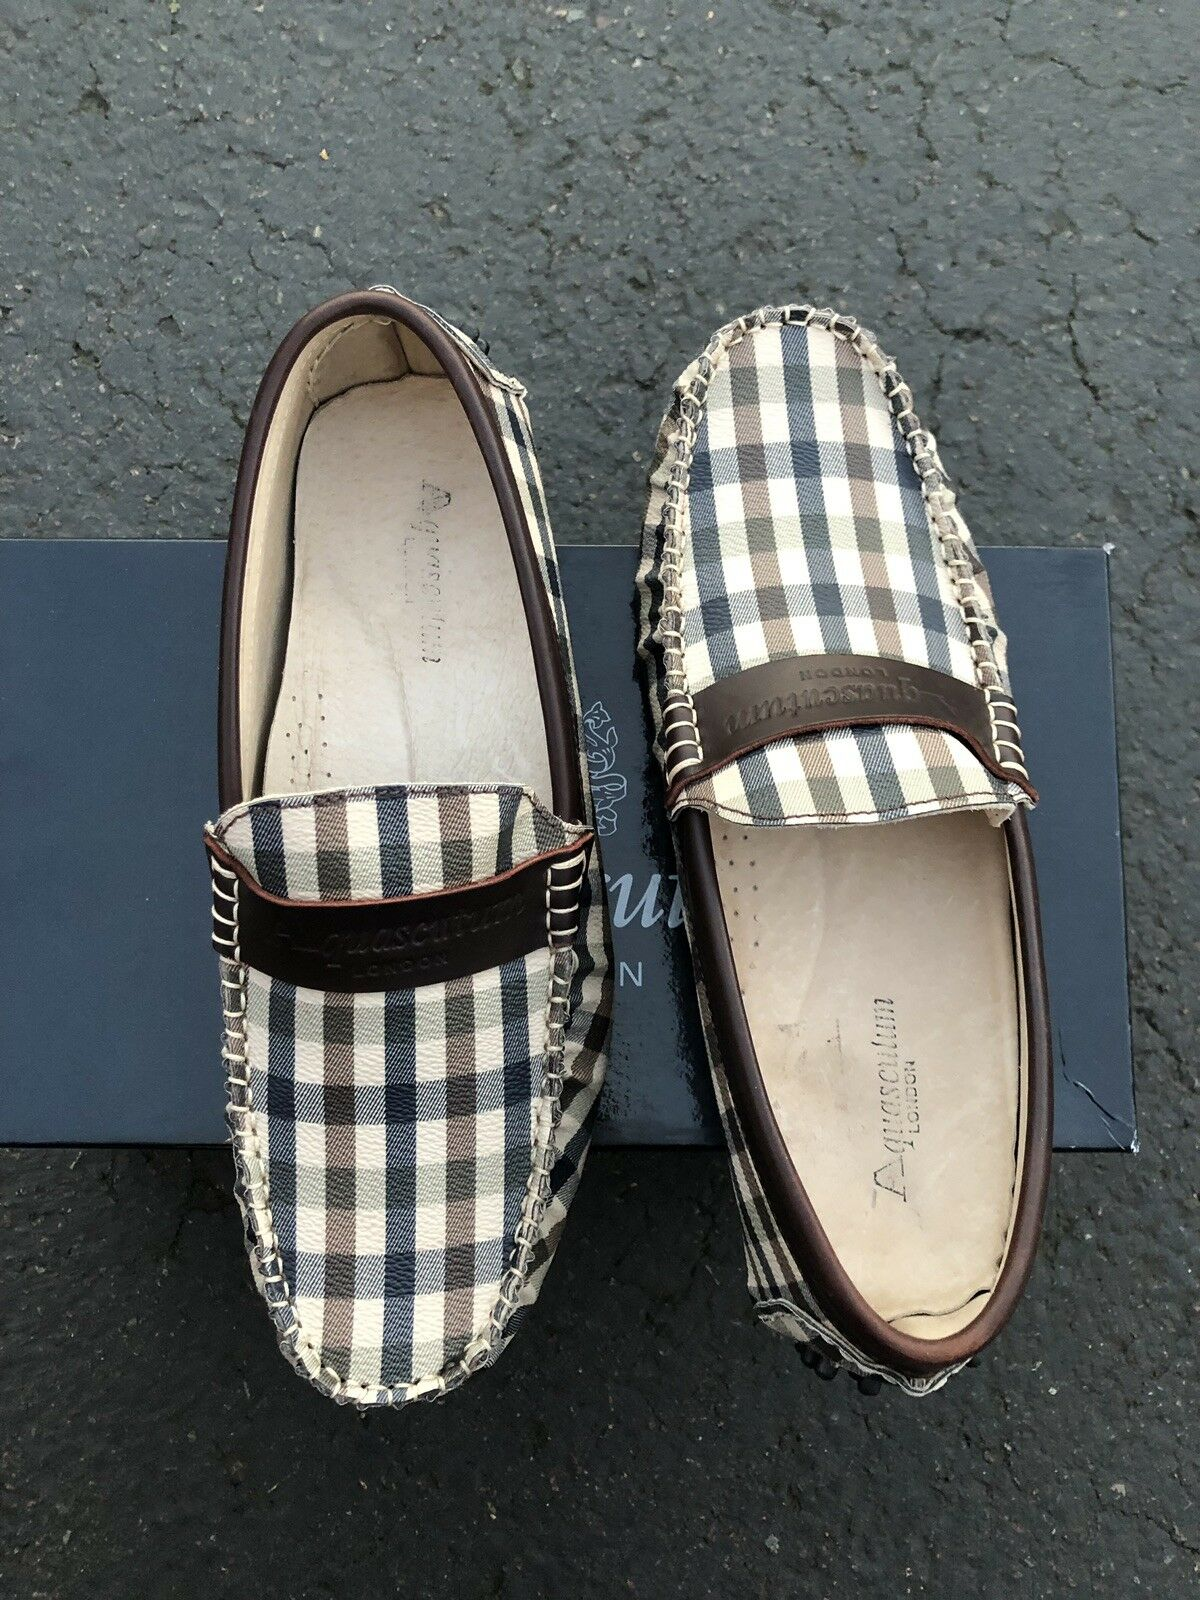 AQUASCUTUM shoes Loafers Men's Size 6 1 2 Genuine Made in ITALY